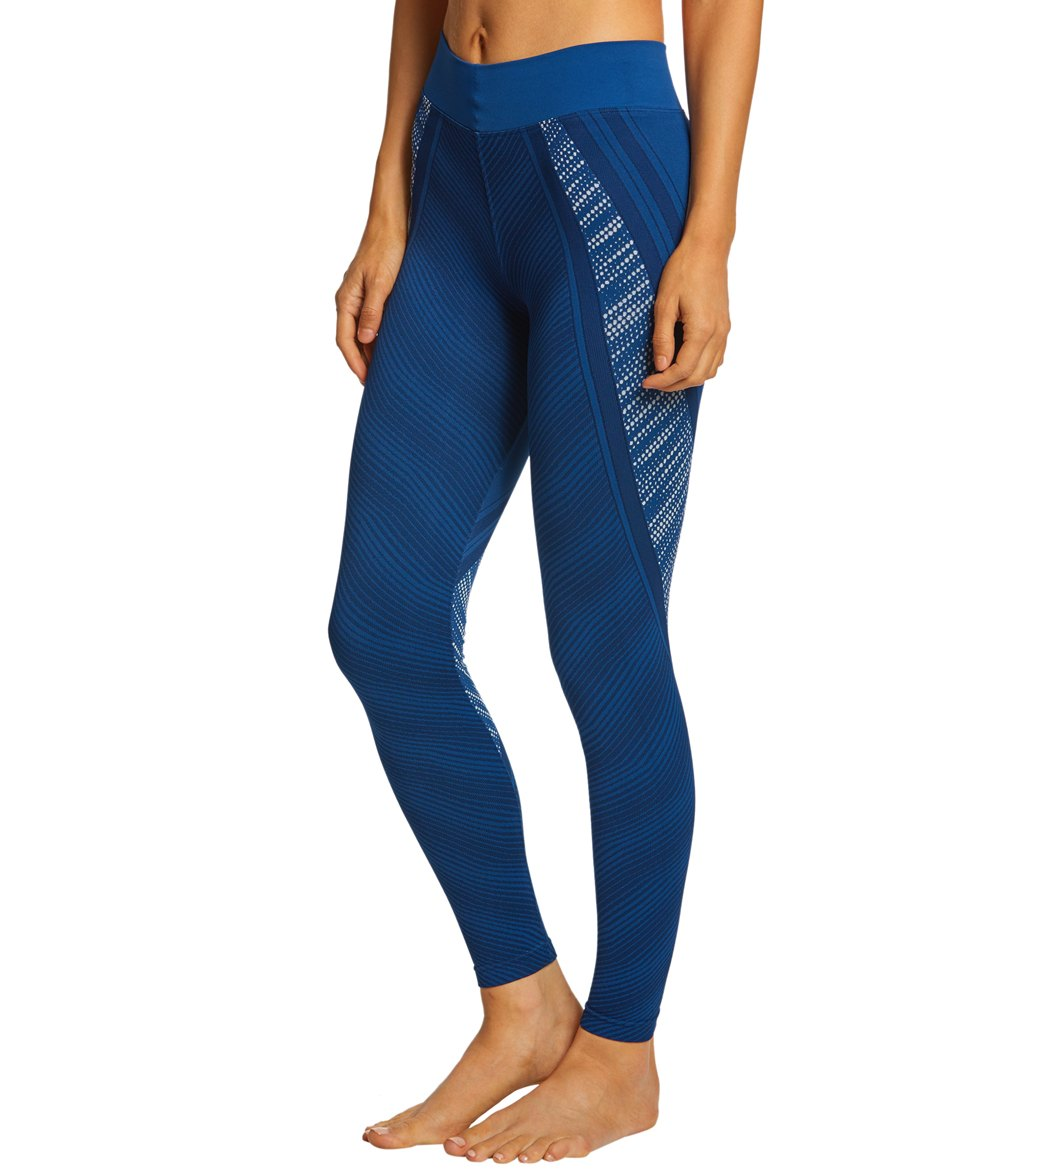 7327c116bf5e8 NUX In A Row Seamless Yoga Leggings at YogaOutlet.com - Free Shipping